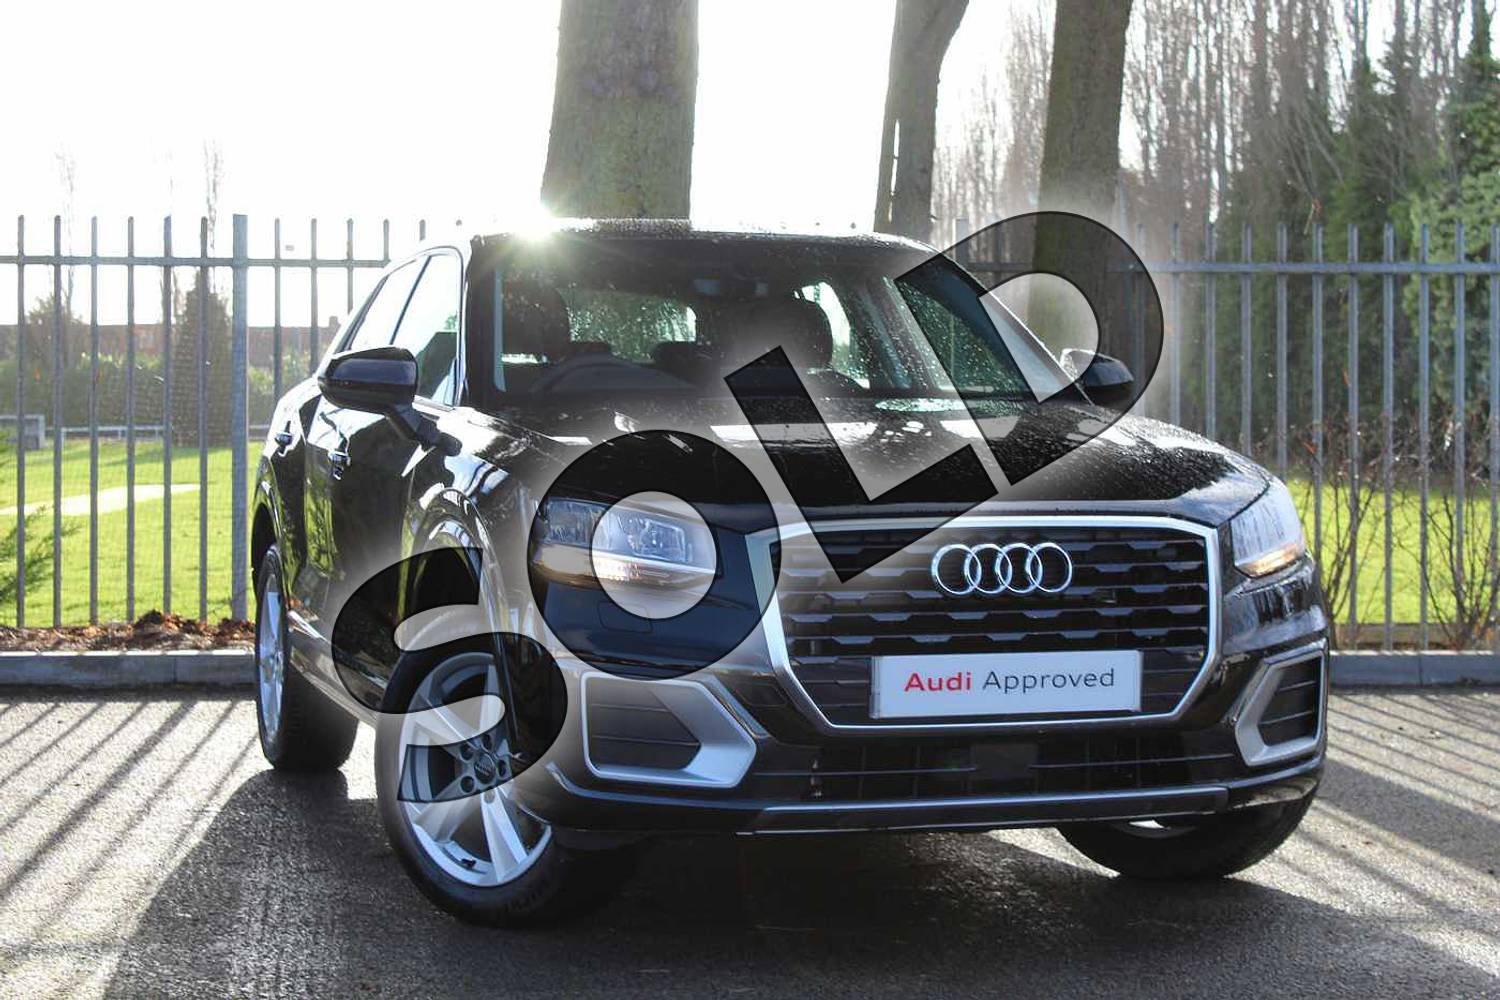 2018 Audi Q2 Estate 30 TFSI Sport 5dr S Tronic in Myth Black Metallic at Coventry Audi